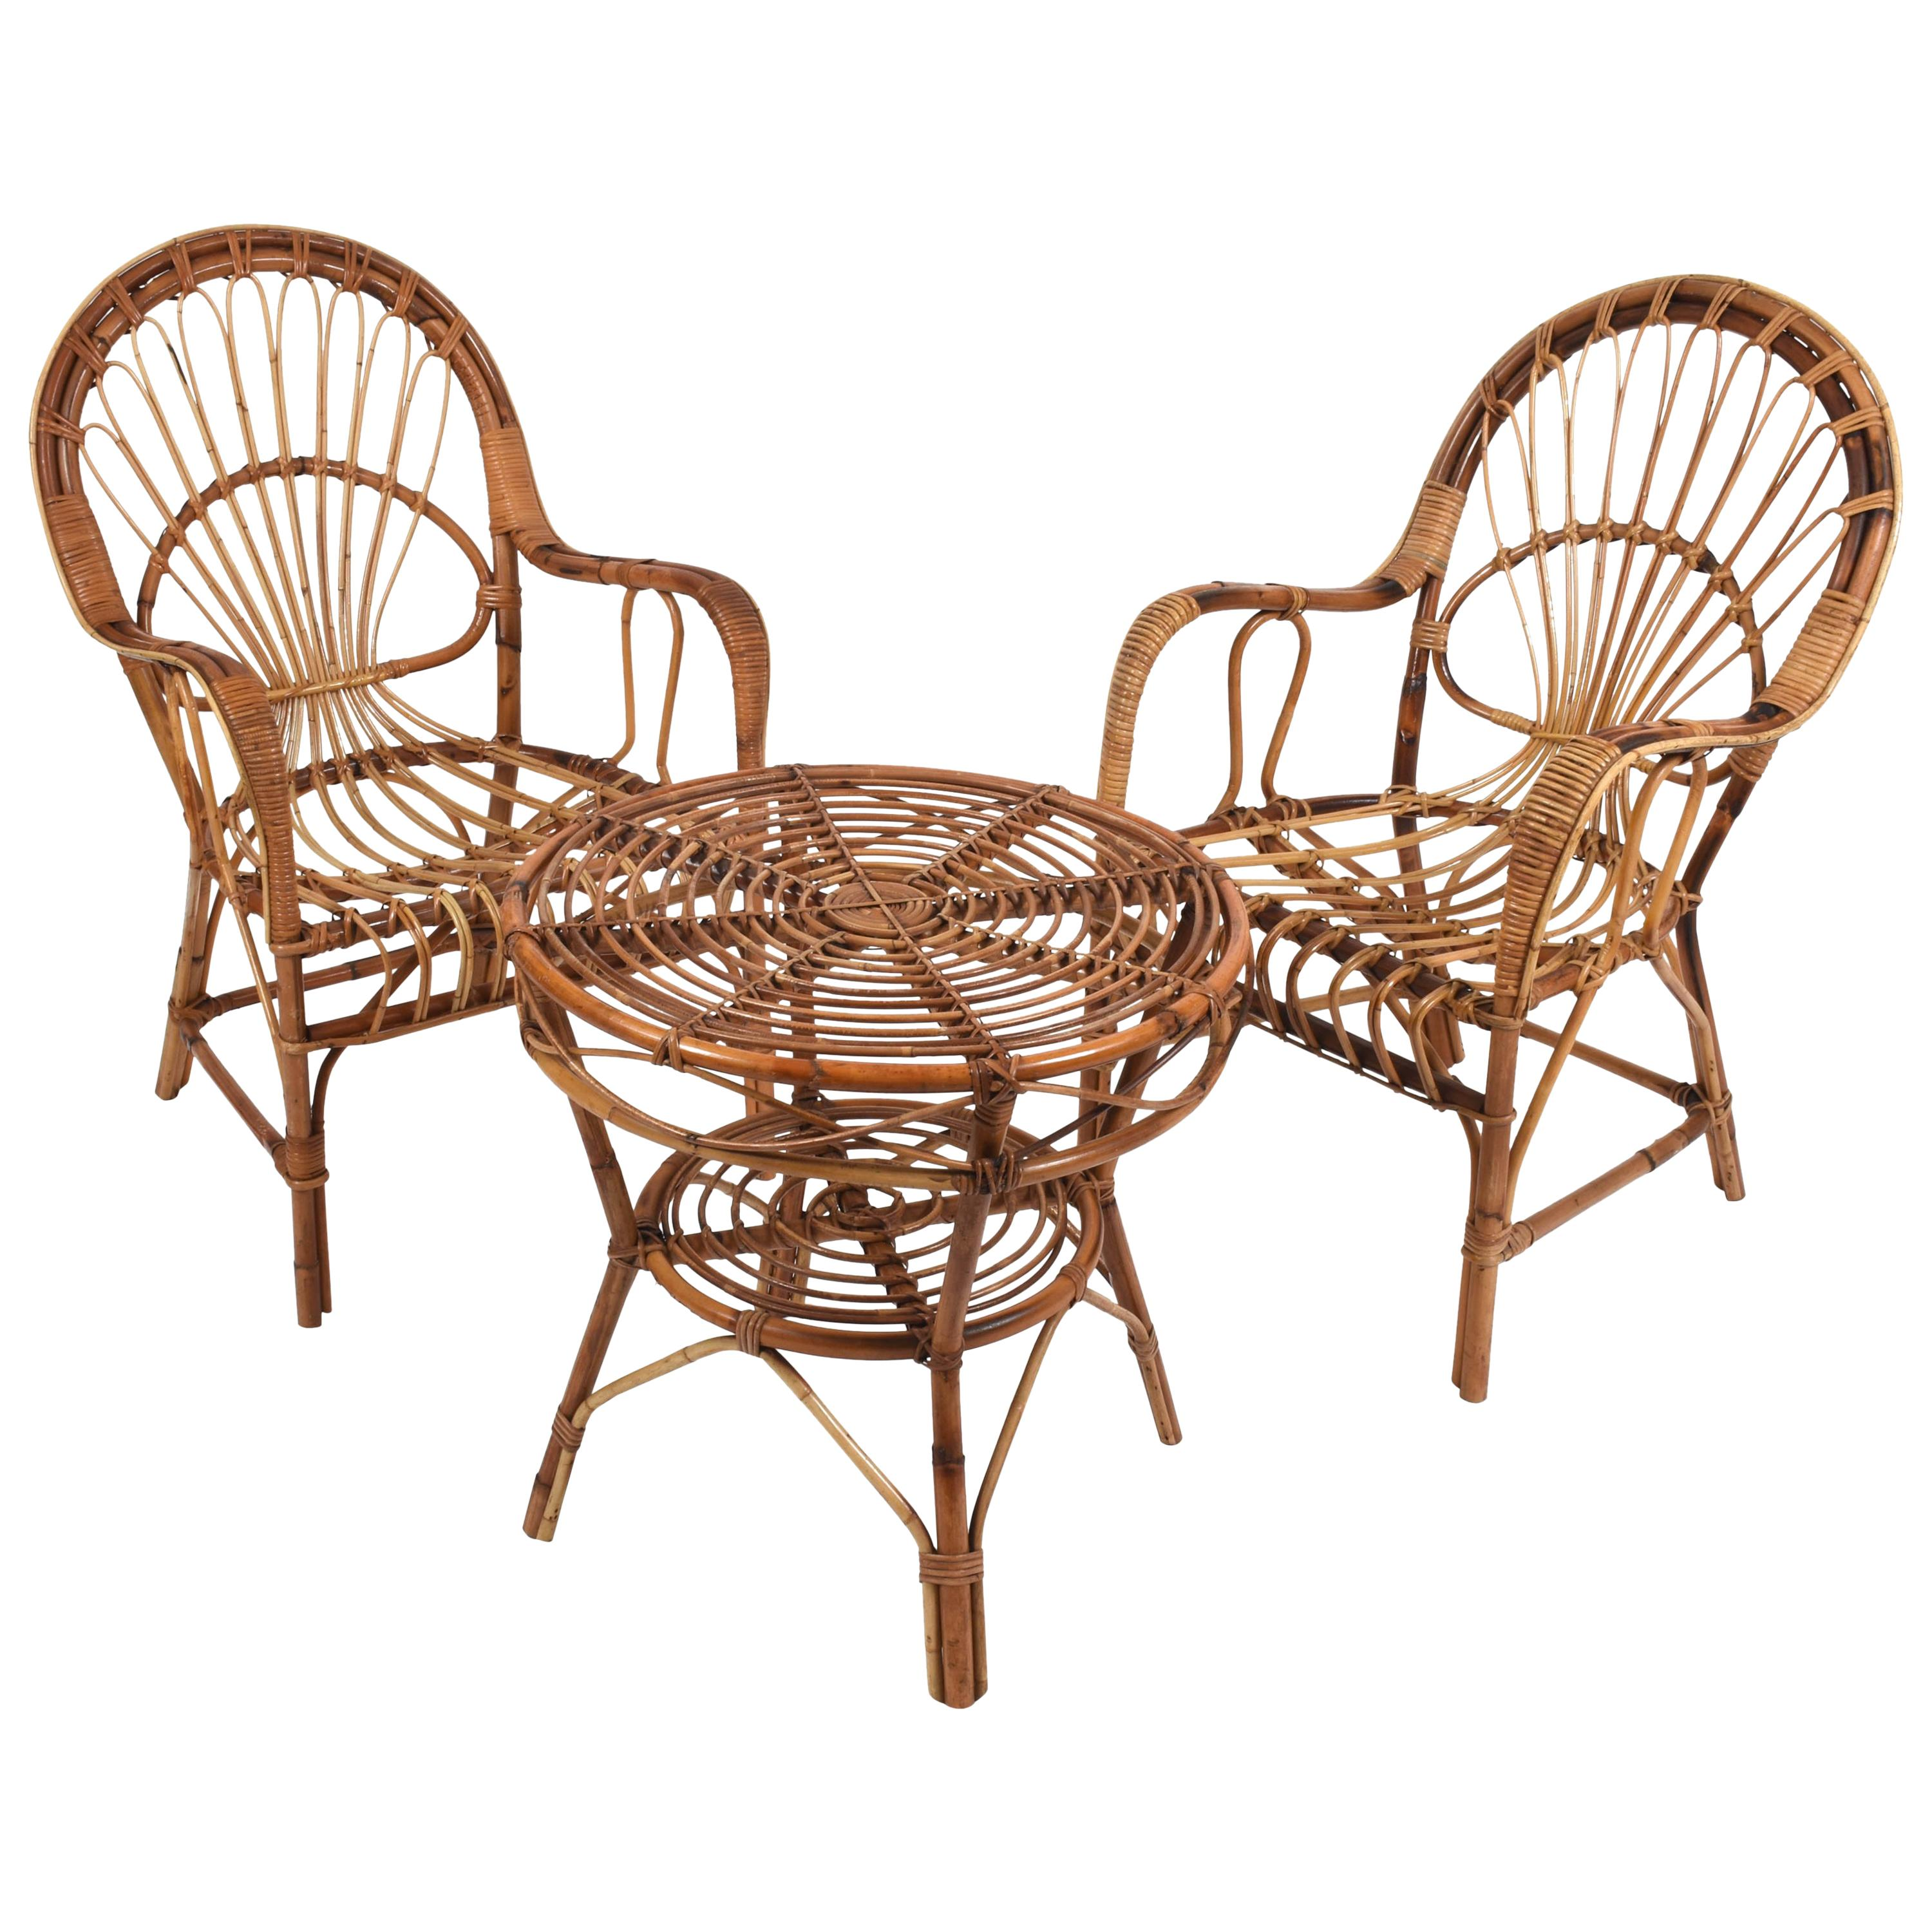 Midcentury Rattan and Bamboo Italian Set of Two Armchairs and Coffee Table 1970s